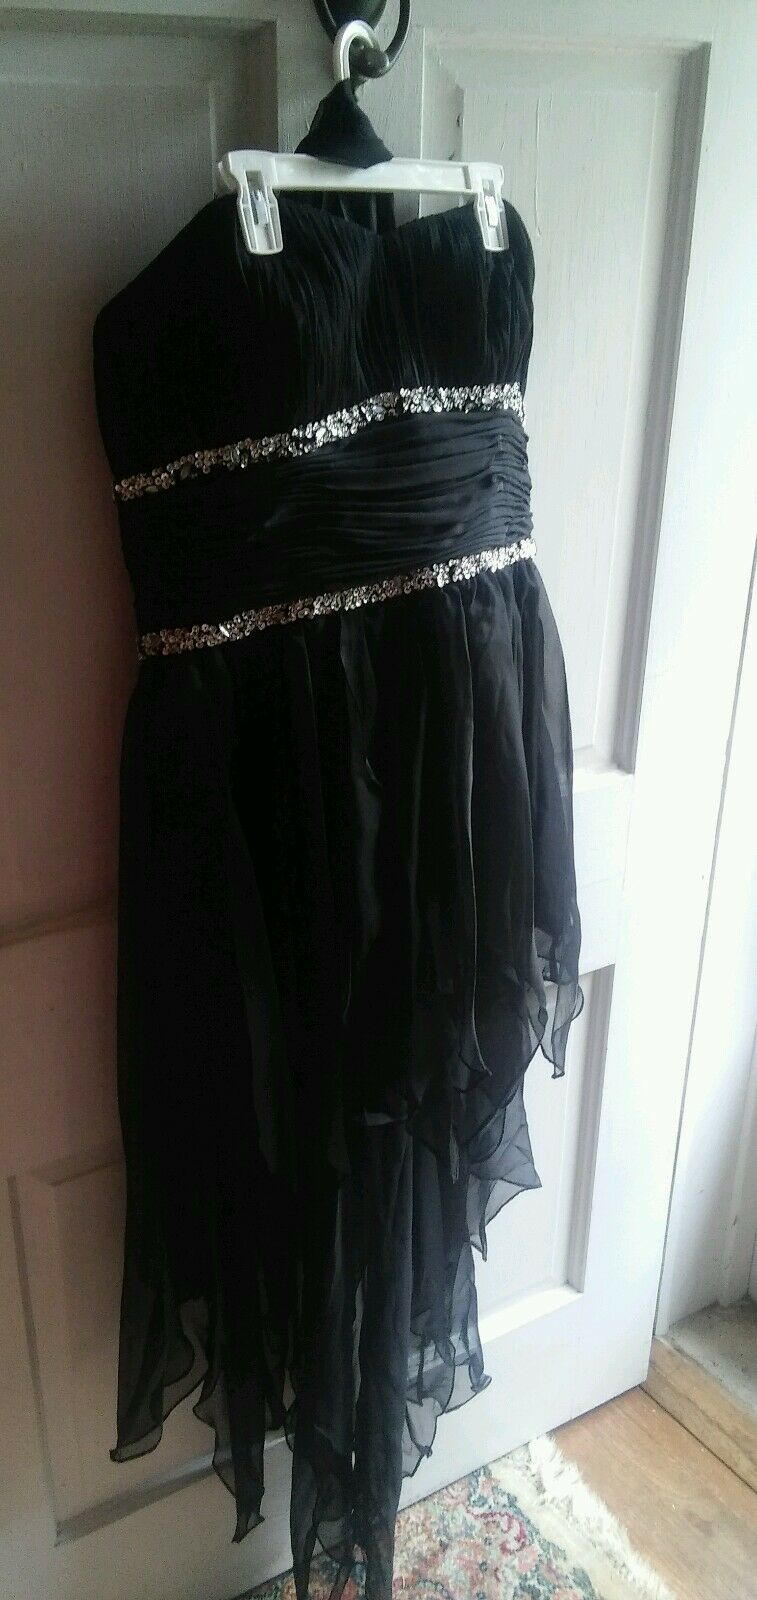 000 Long and Short High Low Prom Formal Evening Short Dress Strapless Dress